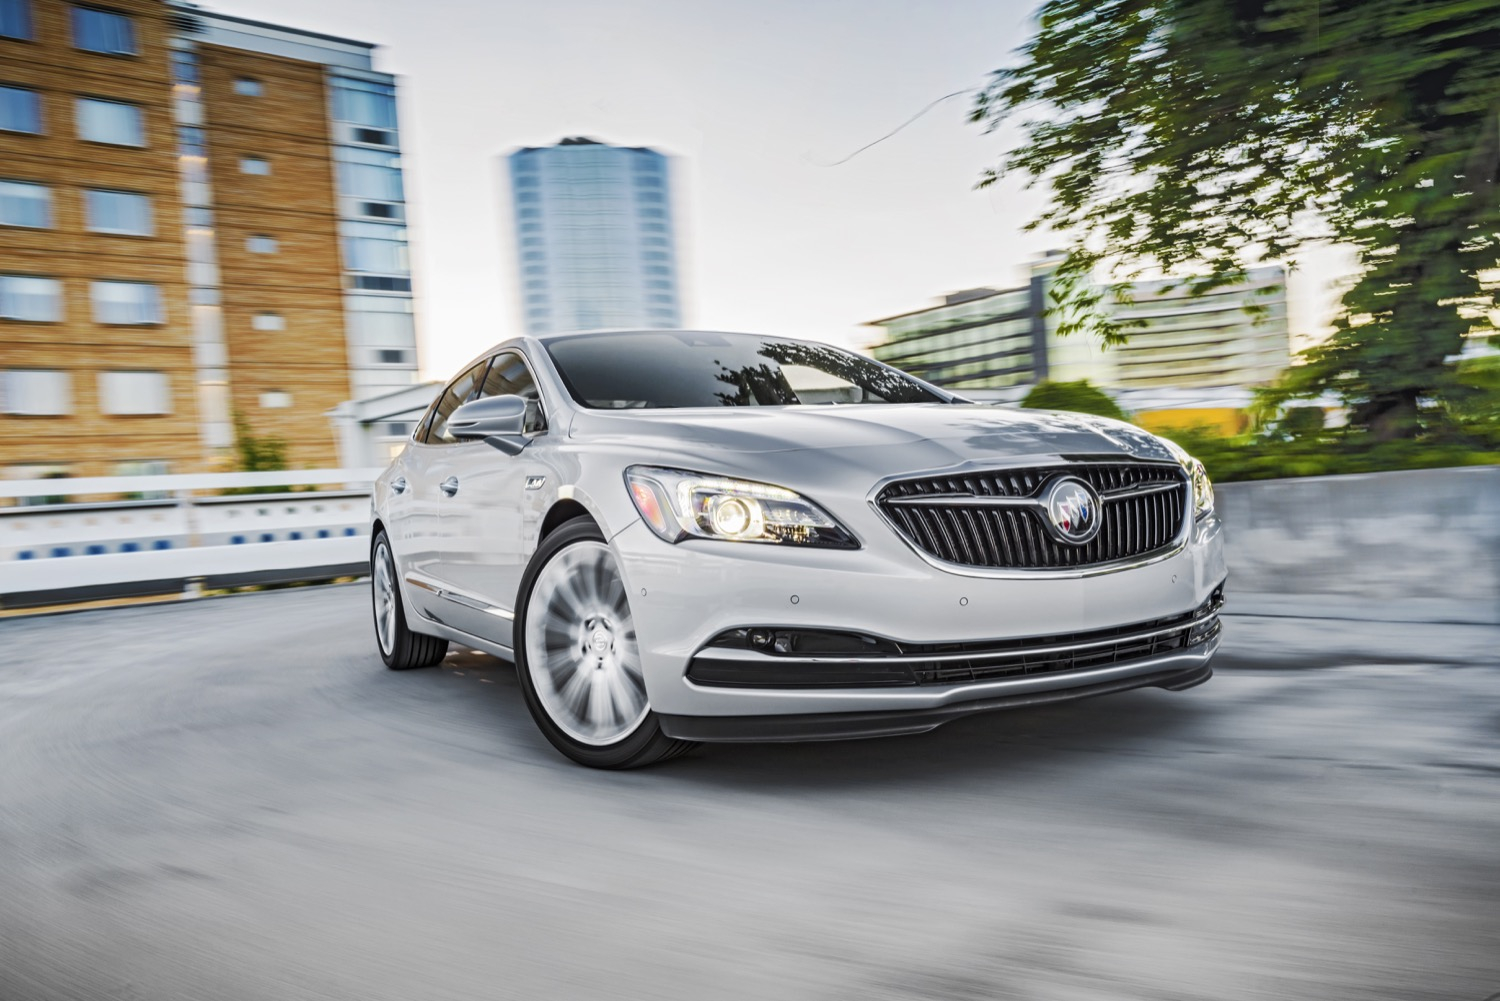 2017 Buick Lacrosse Review | Gm Authority New 2022 Buick Lucerne Reliability, Wheels, Grill